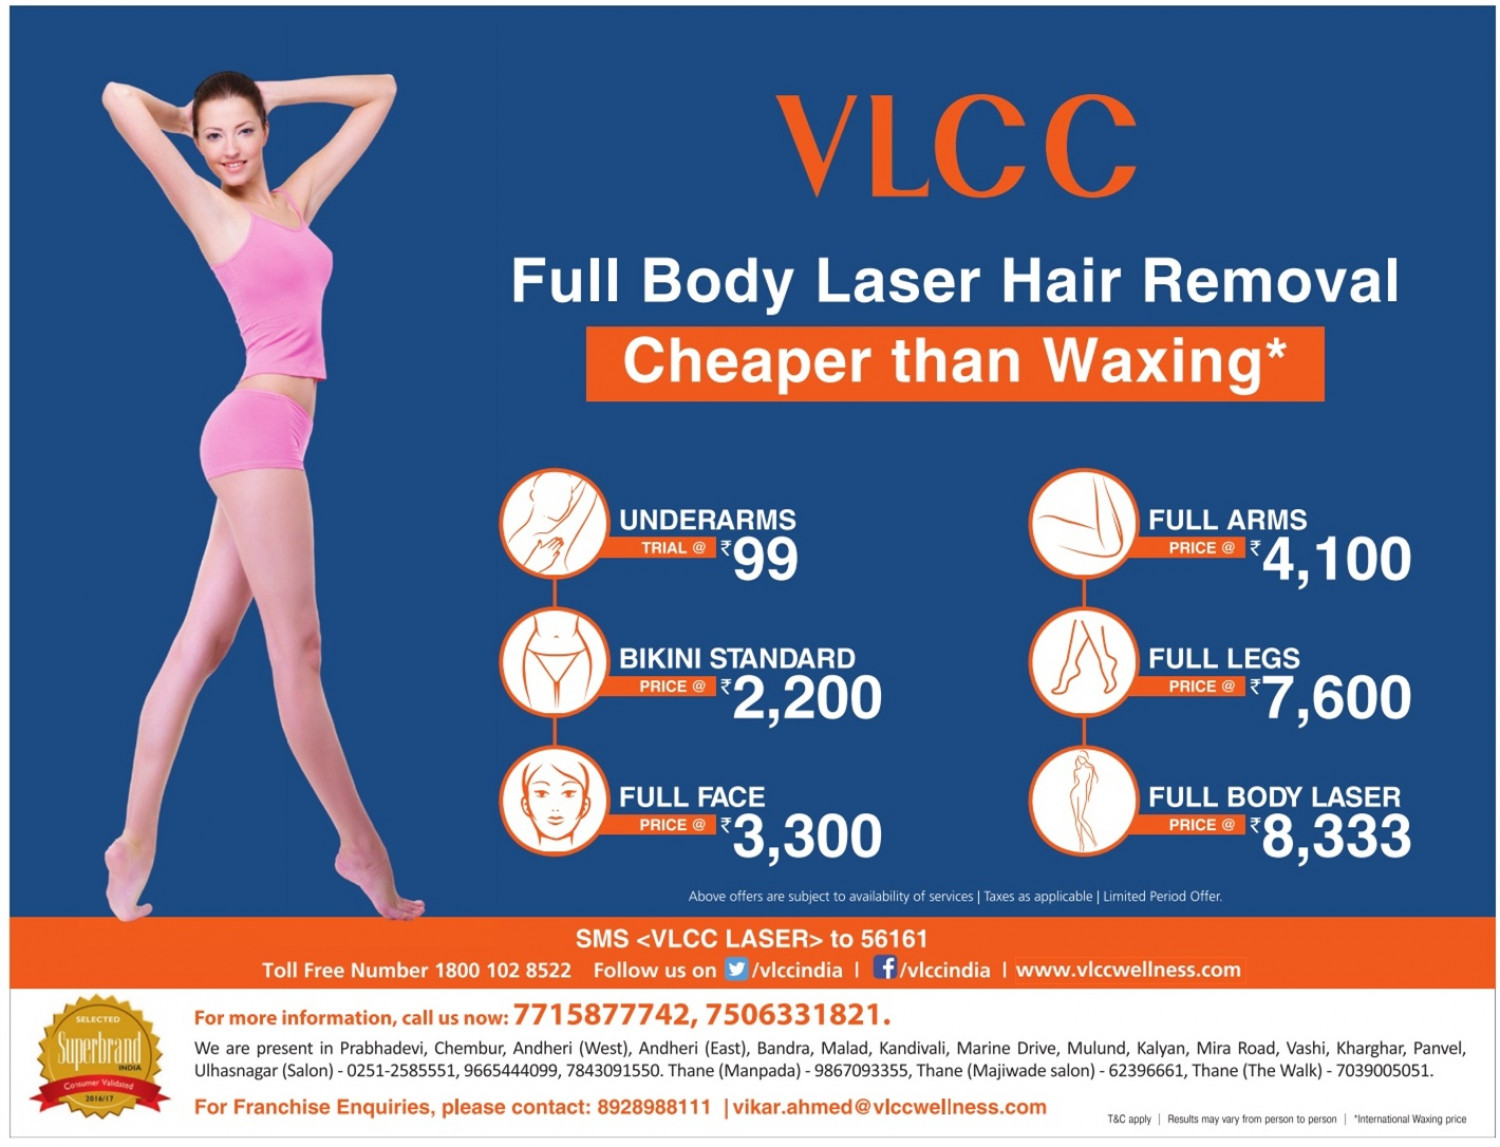 Best Option for Permanent Hair Reduction Infographic